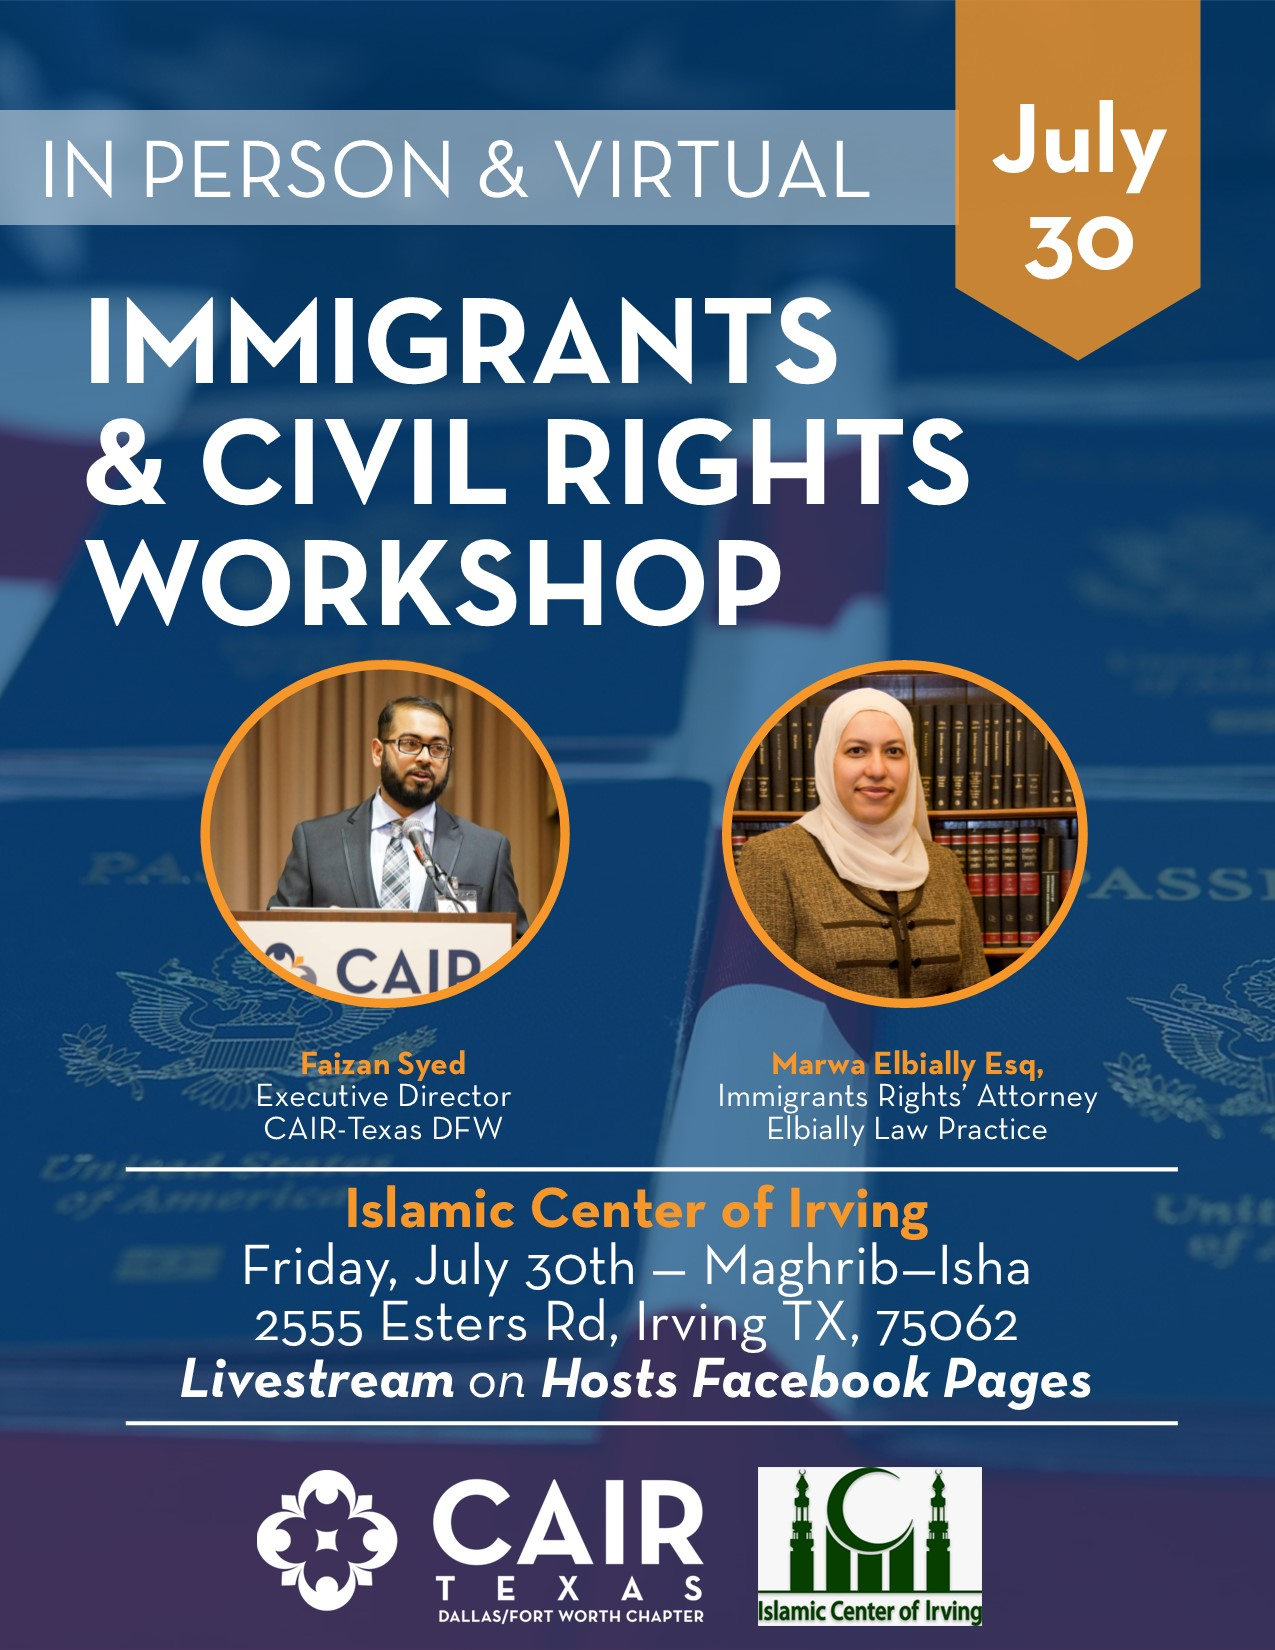 Immigration & Civil Rights Workshop at Islamic Center of Irving: July 30th